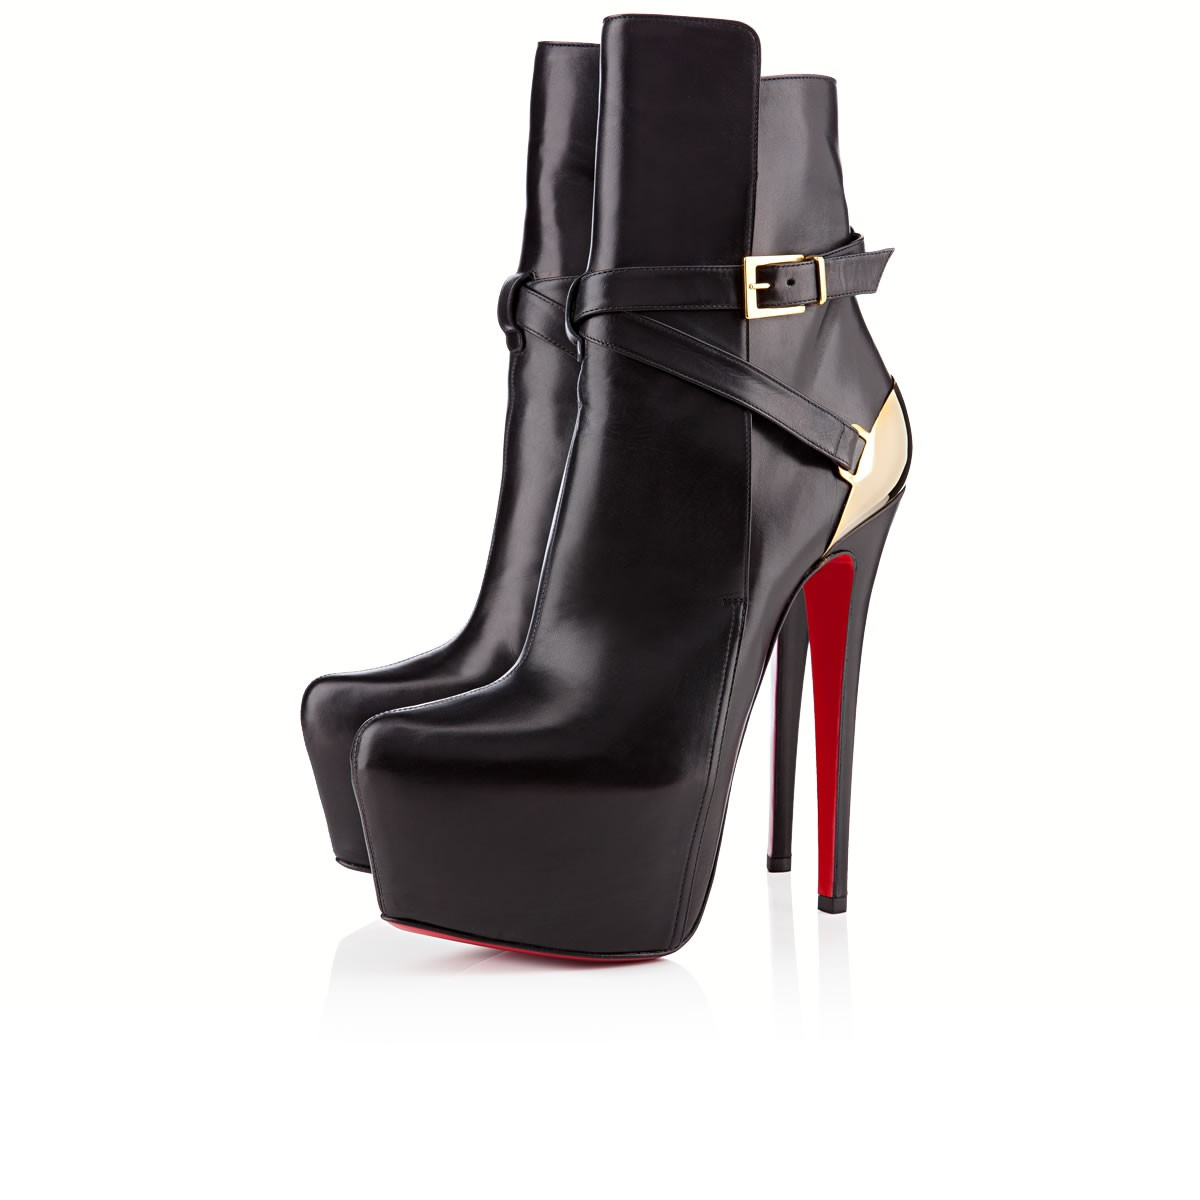 innovative design 6a5b6 67f9f Christian Louboutin Store|Christian Louboutin Boots Equestria Black Gold.